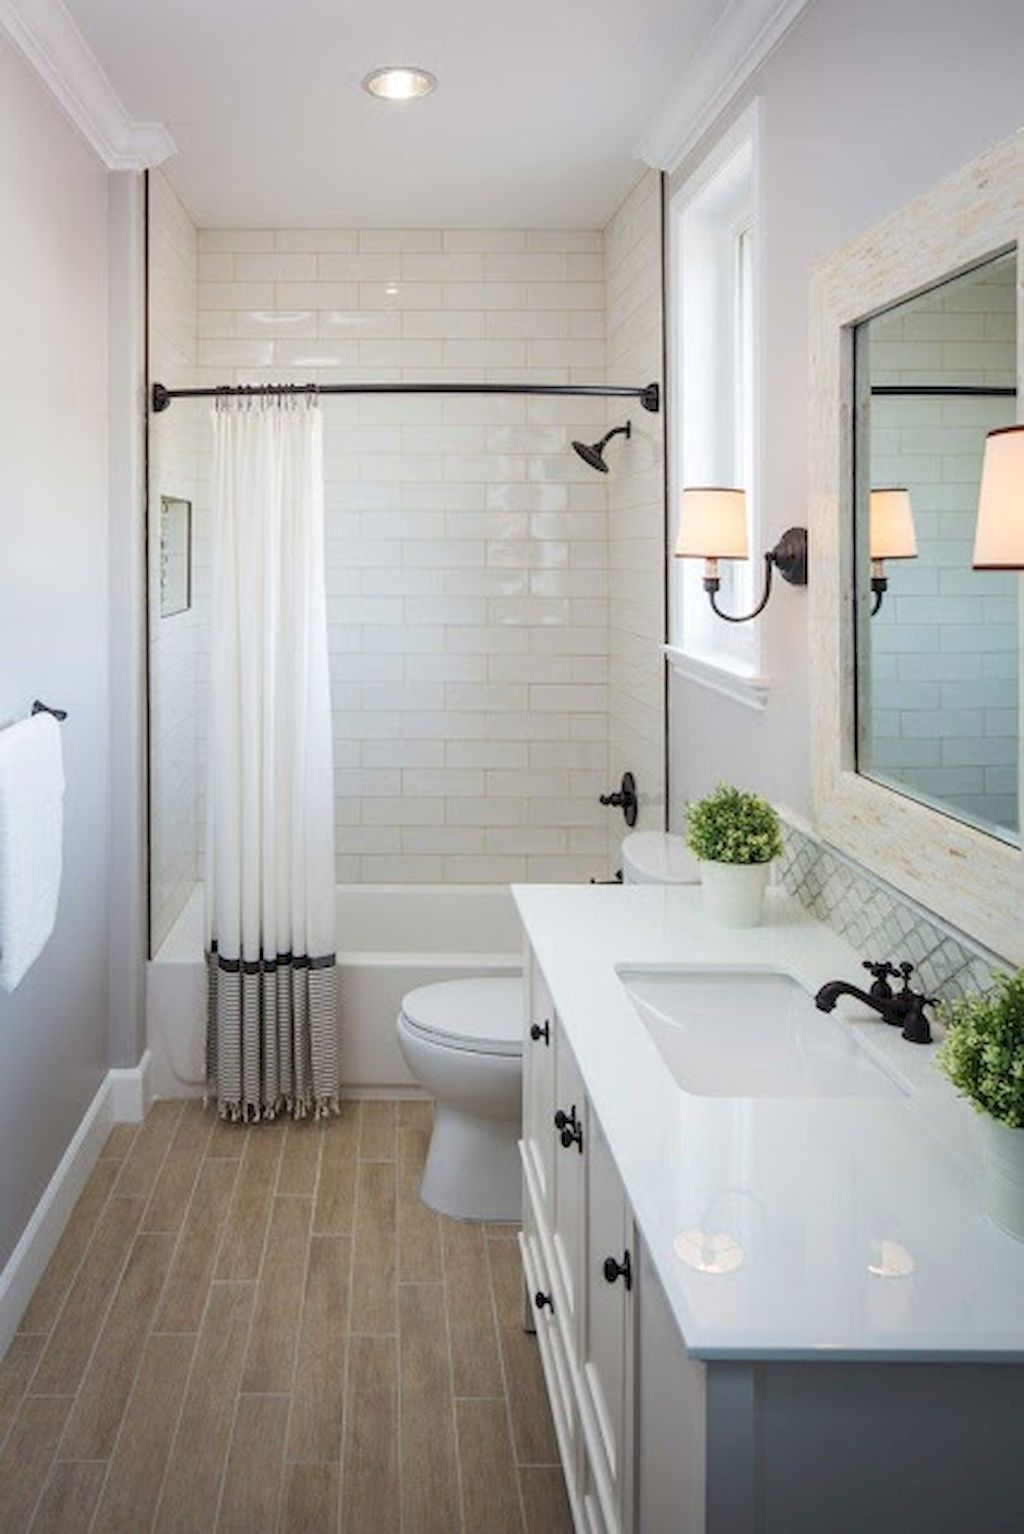 40 Graceful Tiny Apartment Bathroom Remodel Ideas On A Budget Homeastern Com Small Bathroom Remodel House Bathroom Bathrooms Remodel